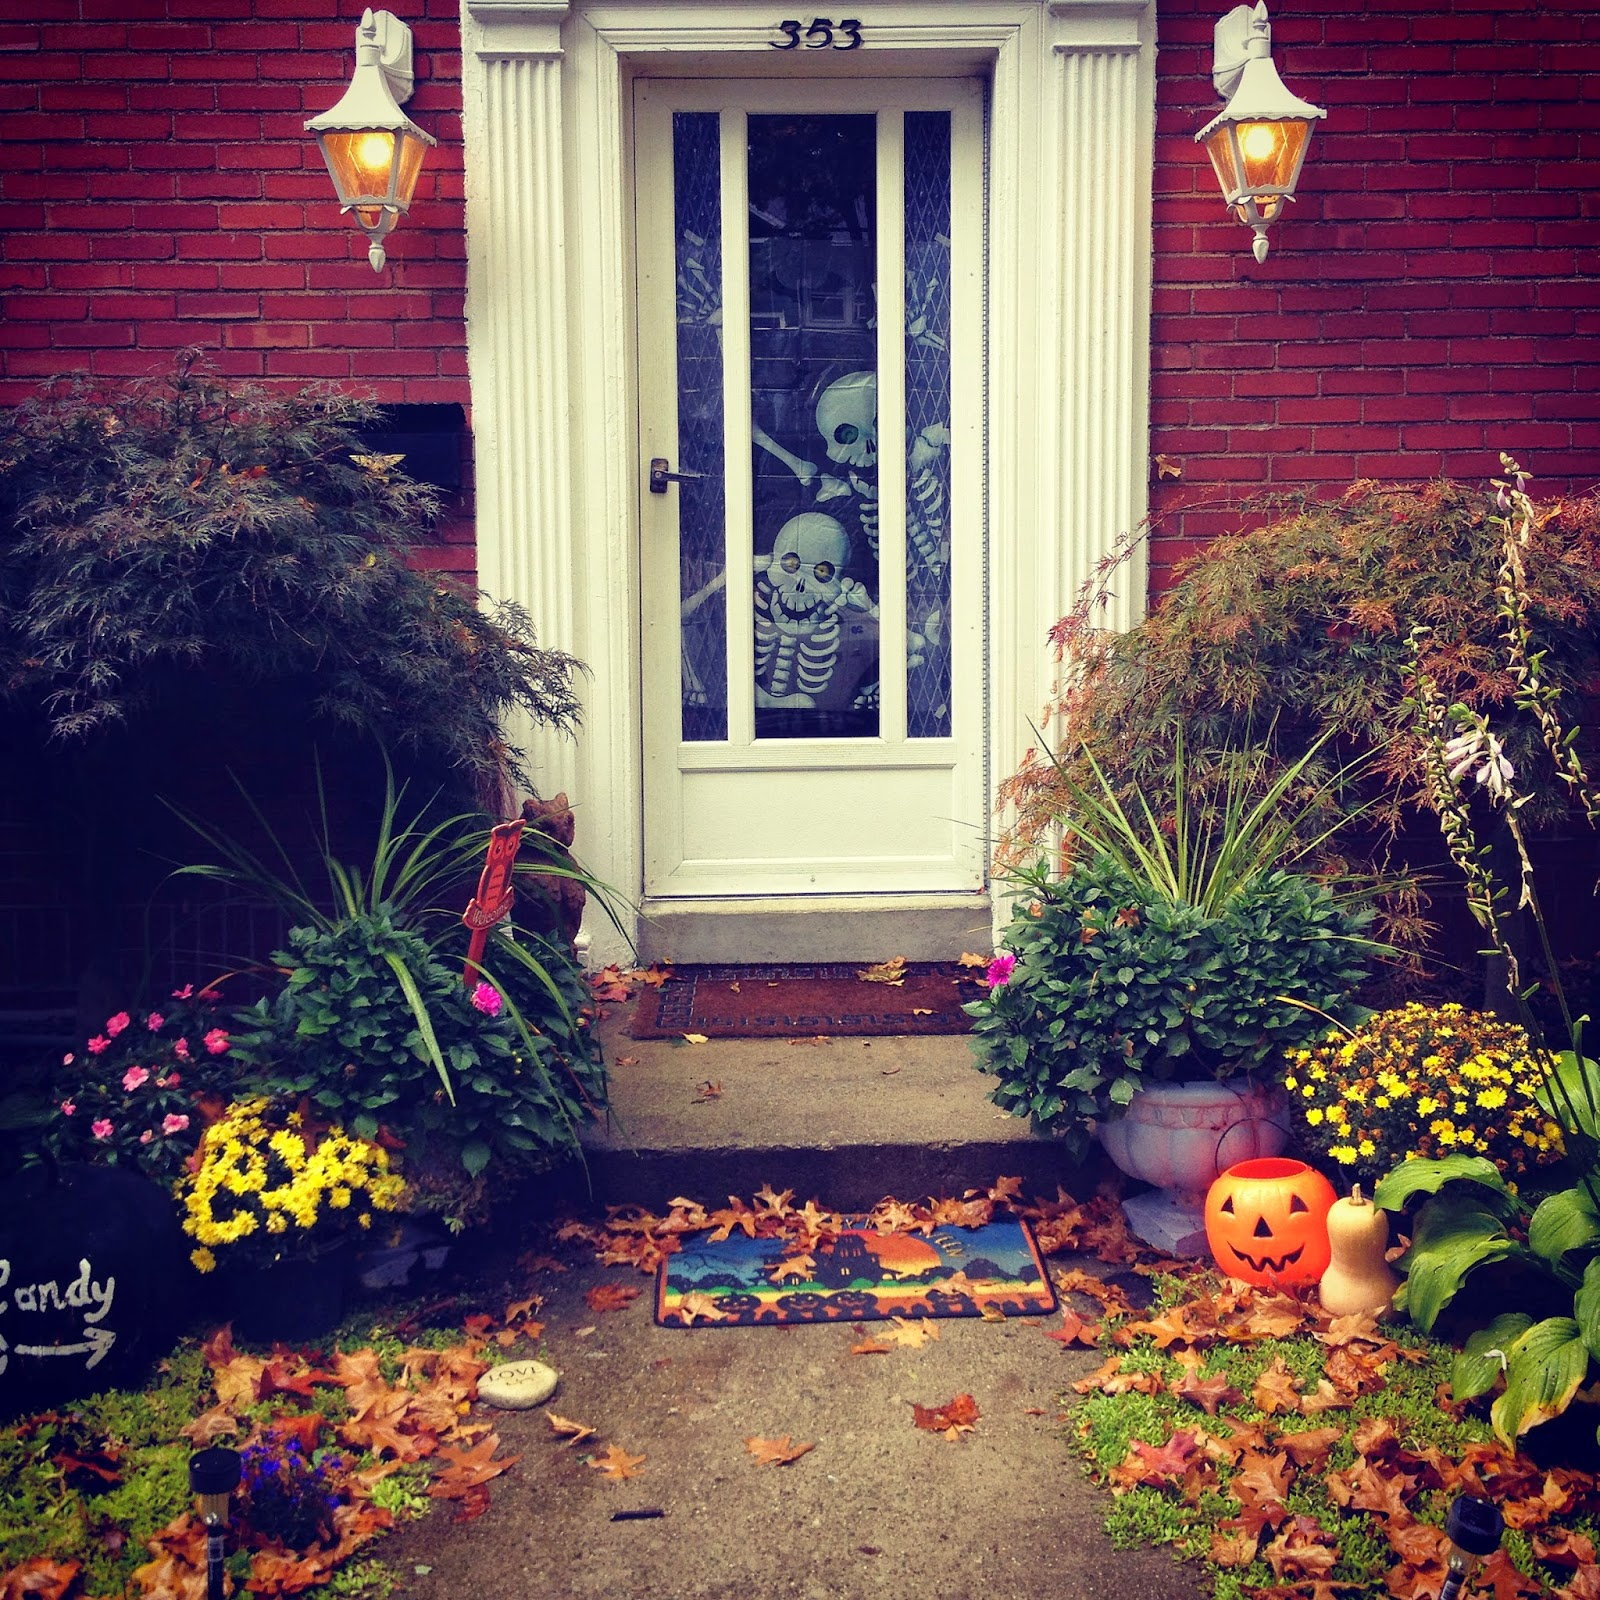 Decorating the Front Door for Halloween